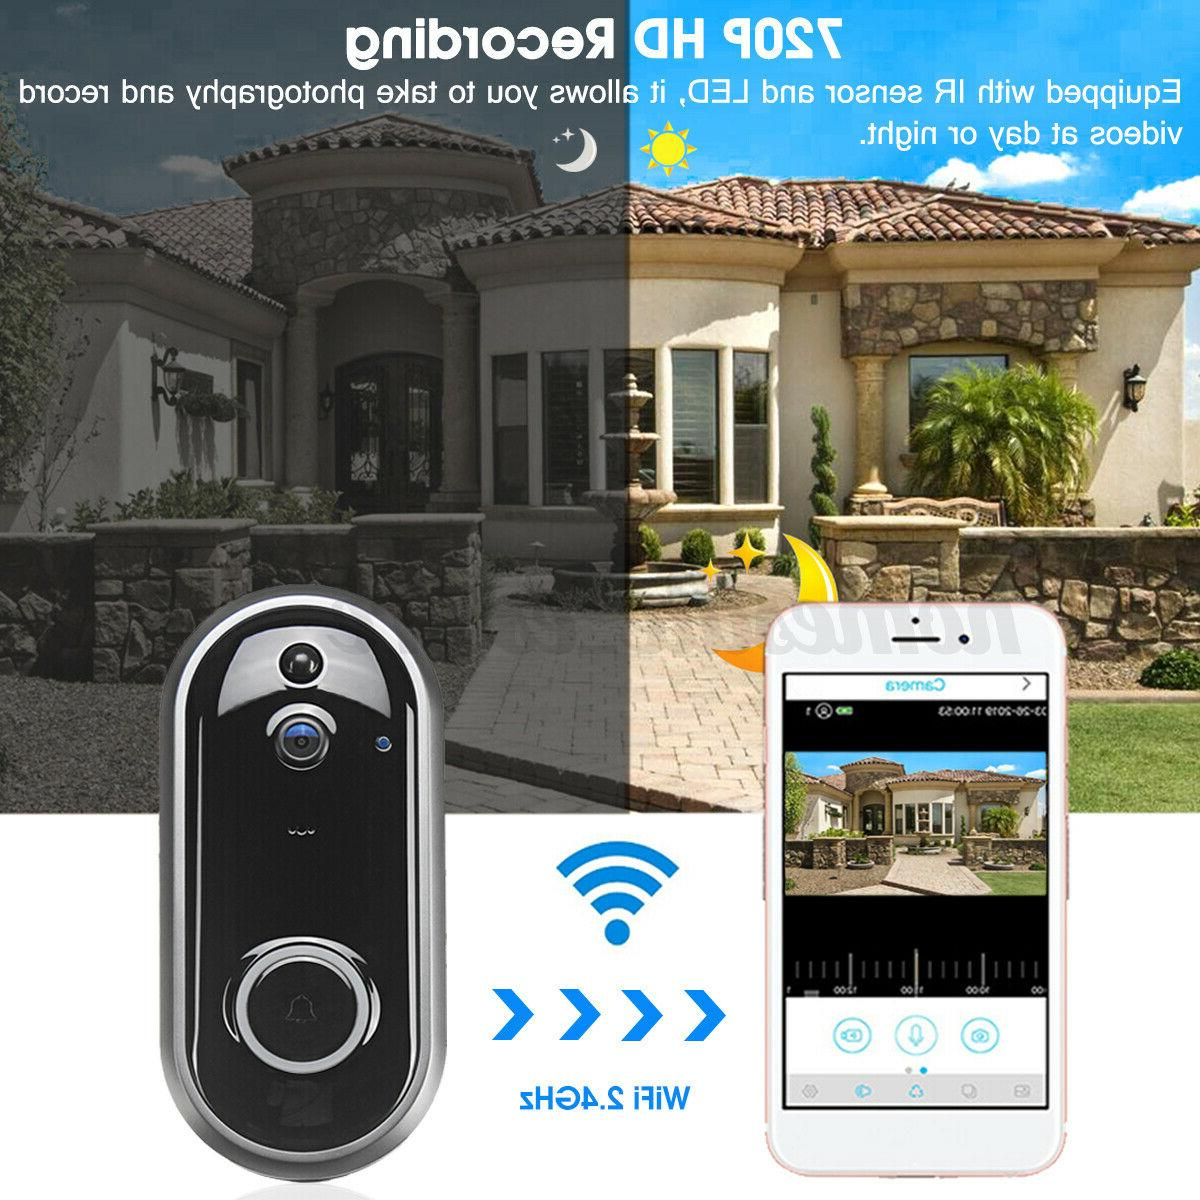 2-Way Wireless Video Security